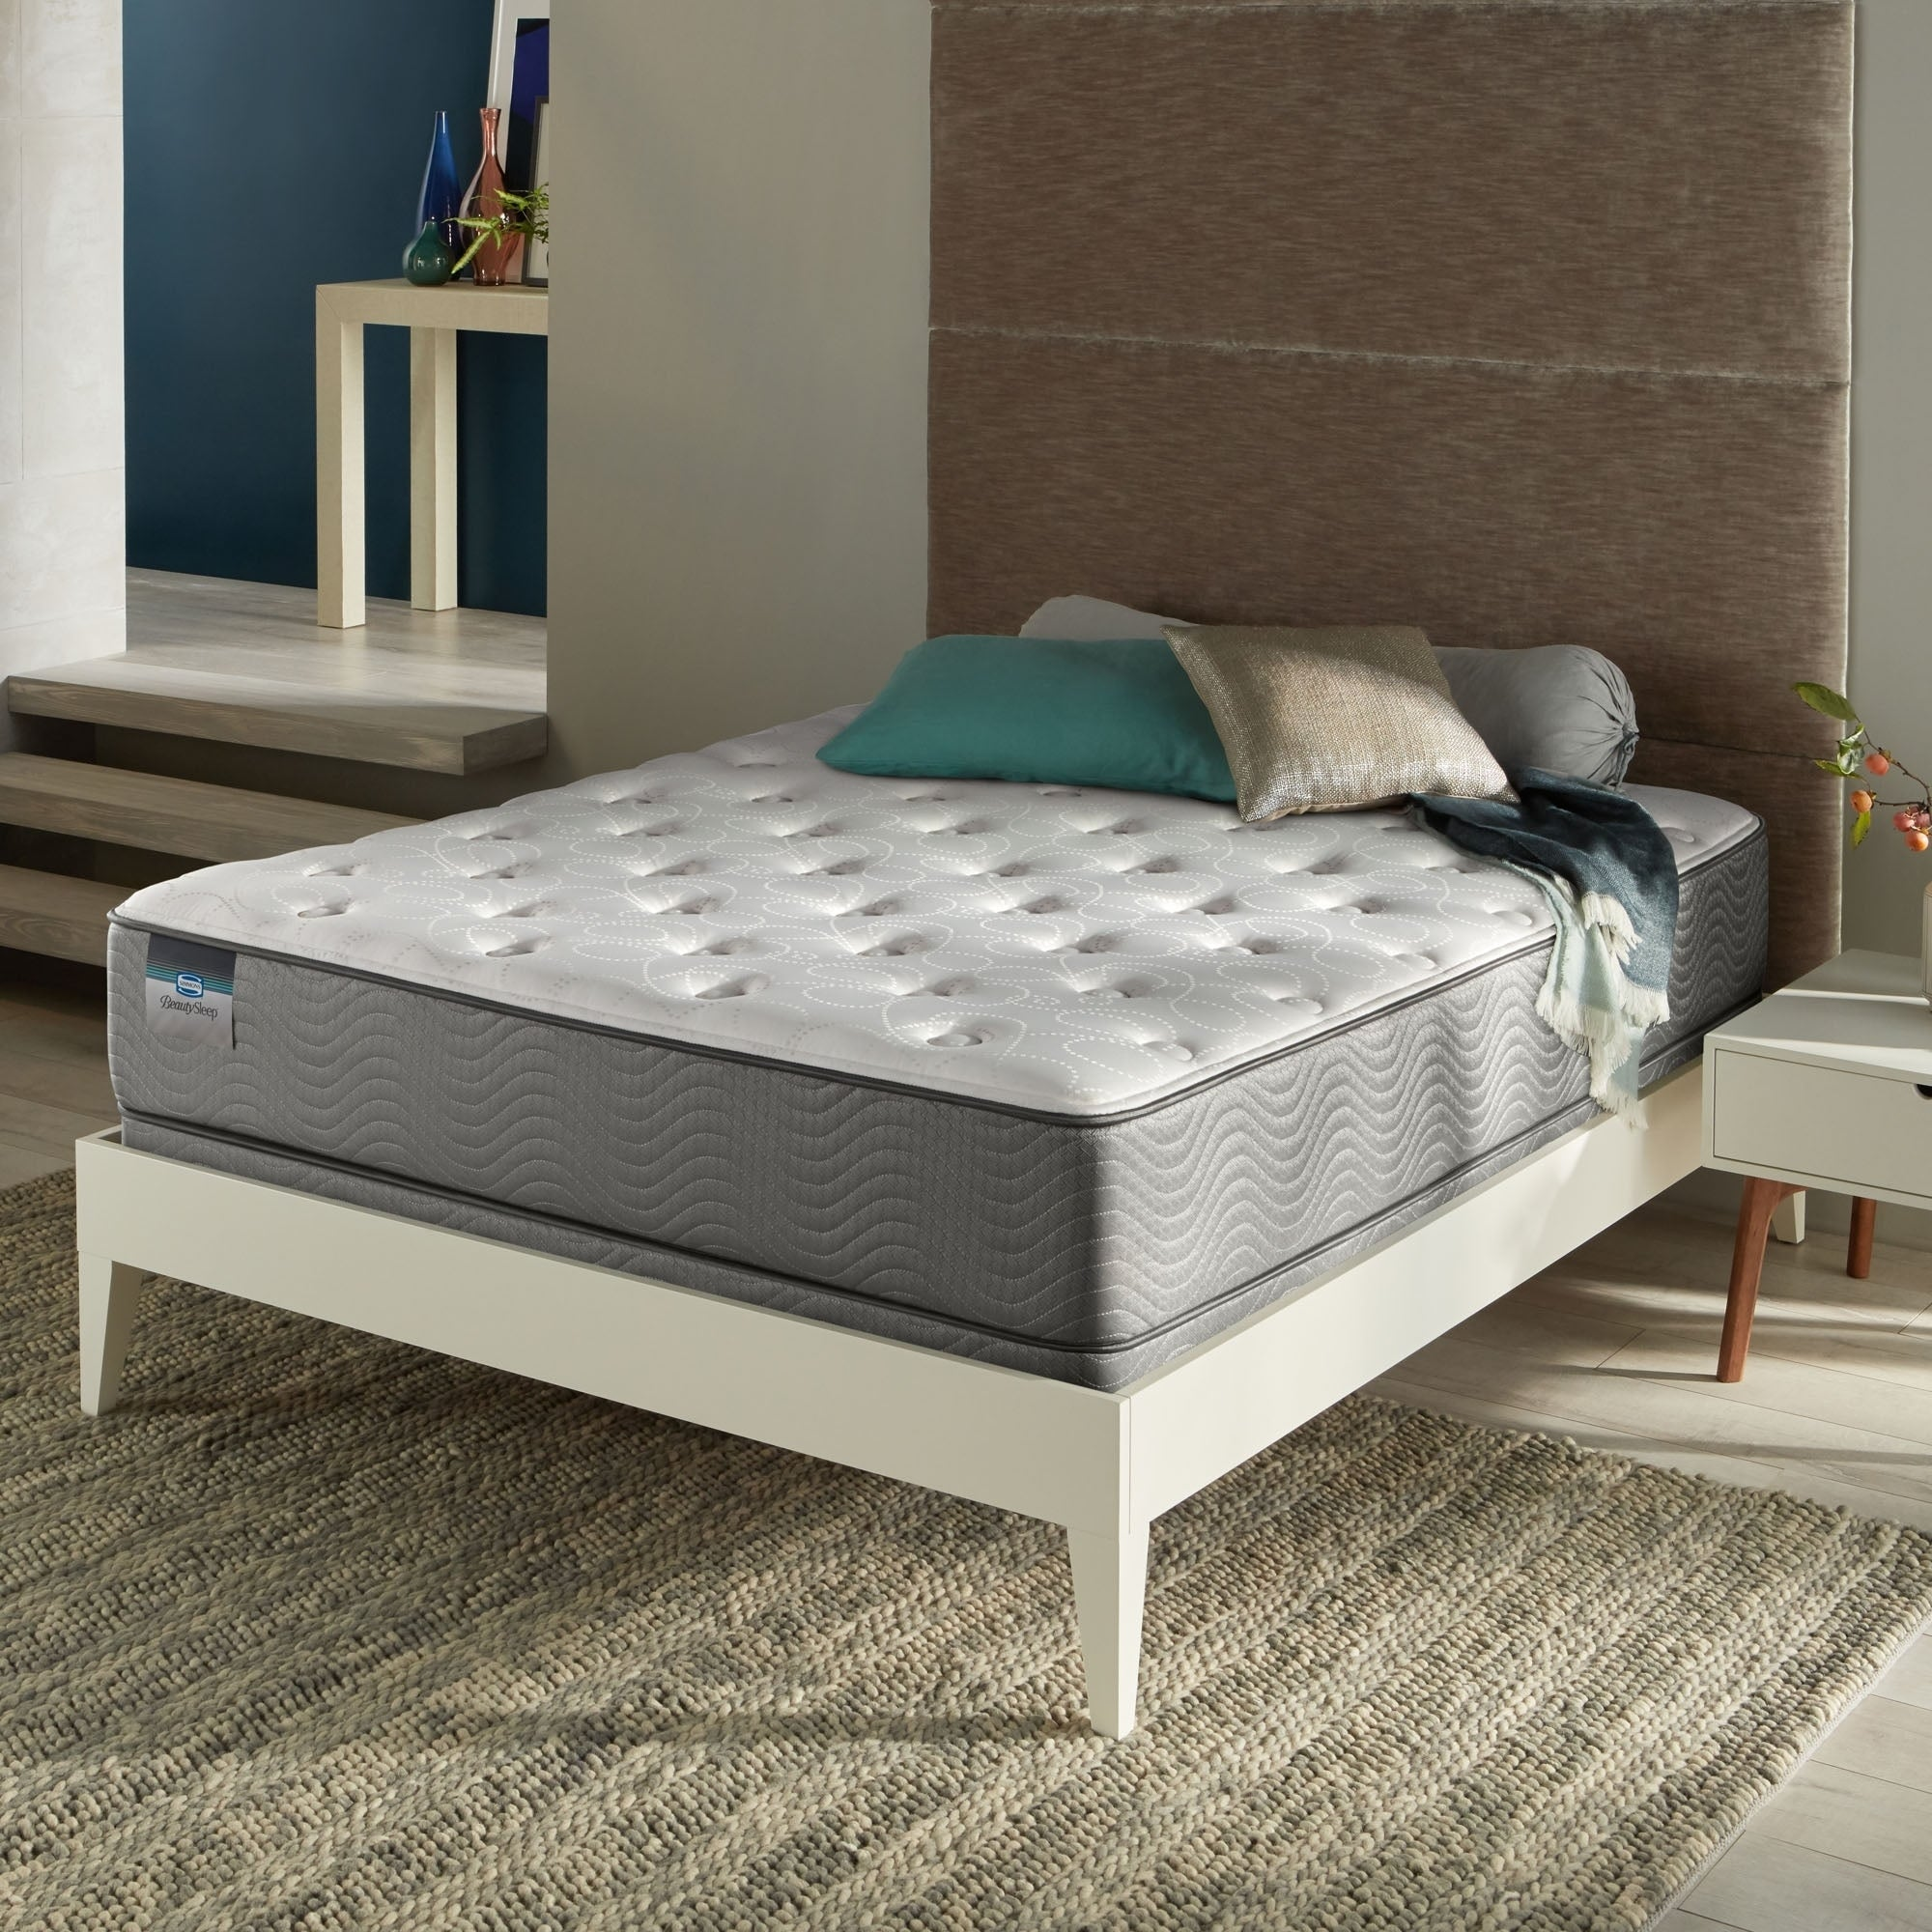 spring mattress mattresses size new and twin king box cal full costco of